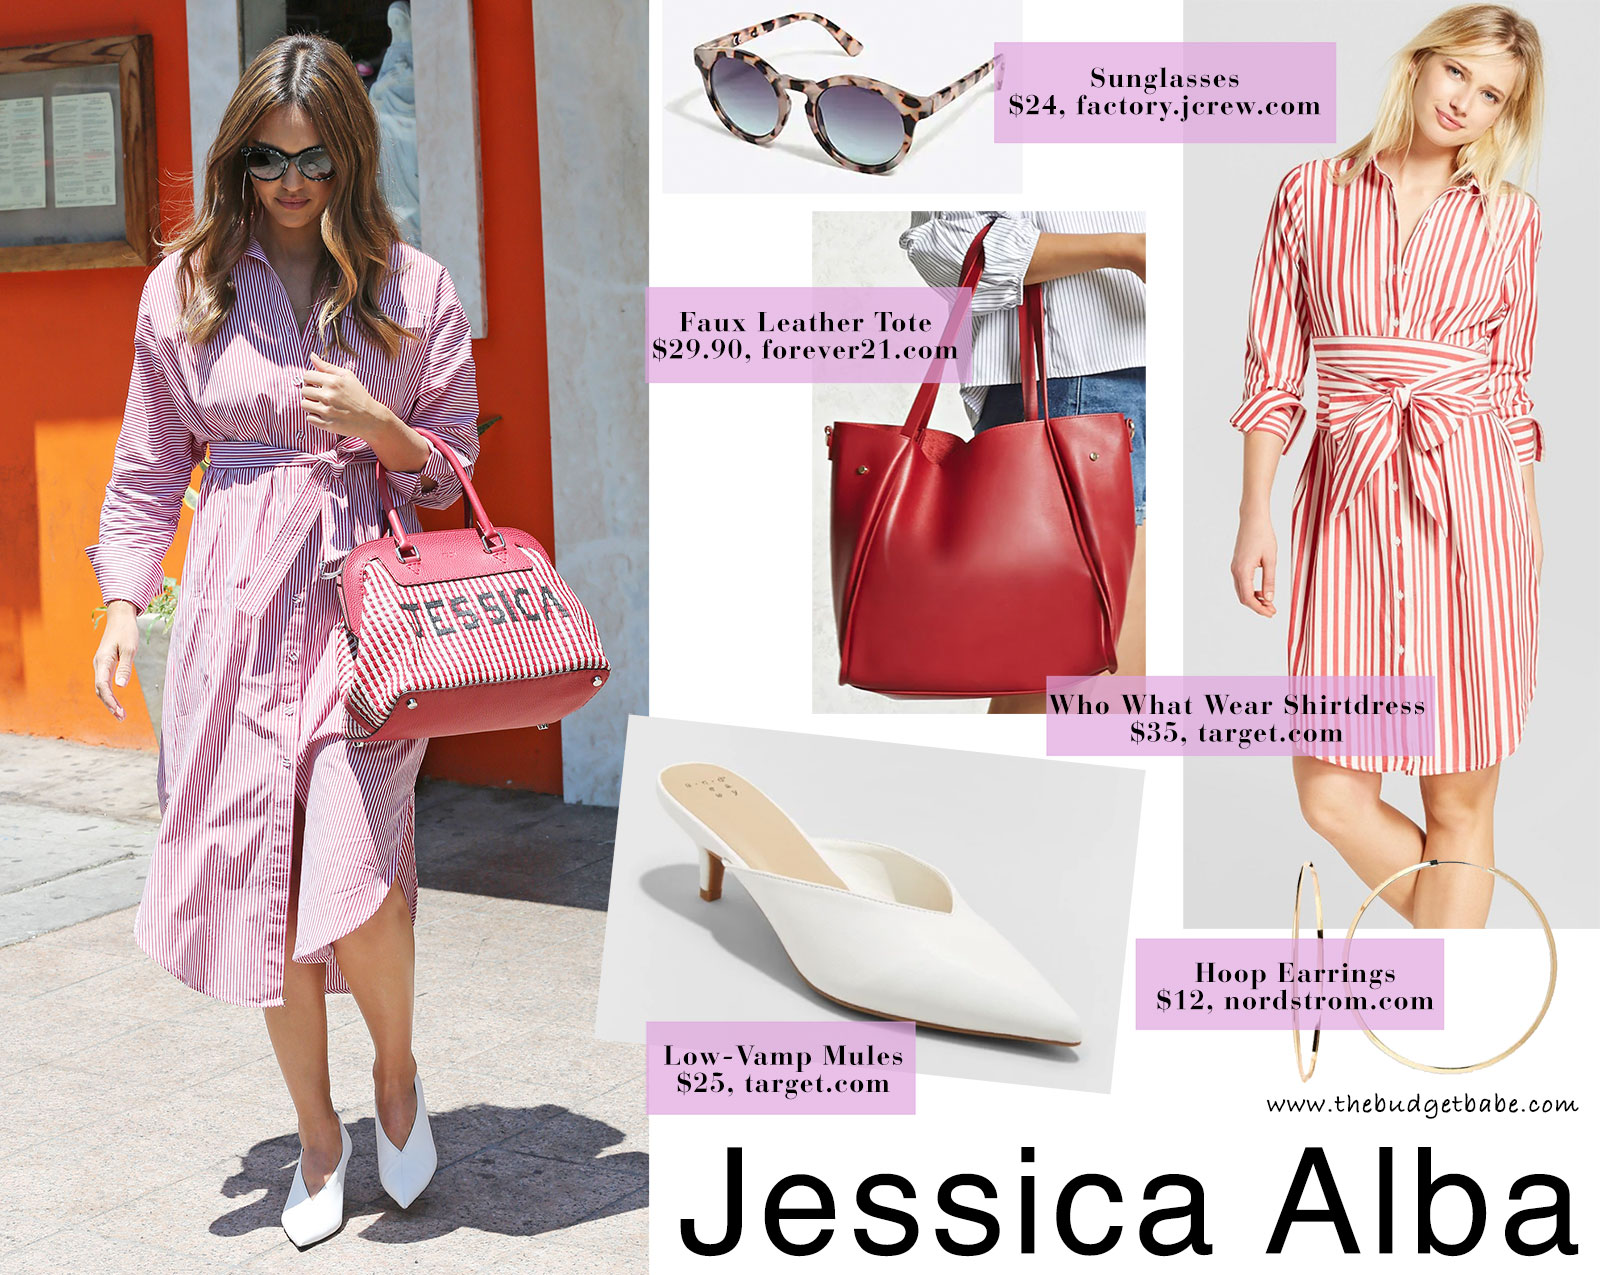 Jessica Alba's red pinstripe shirtdress and low vamp heels look for less